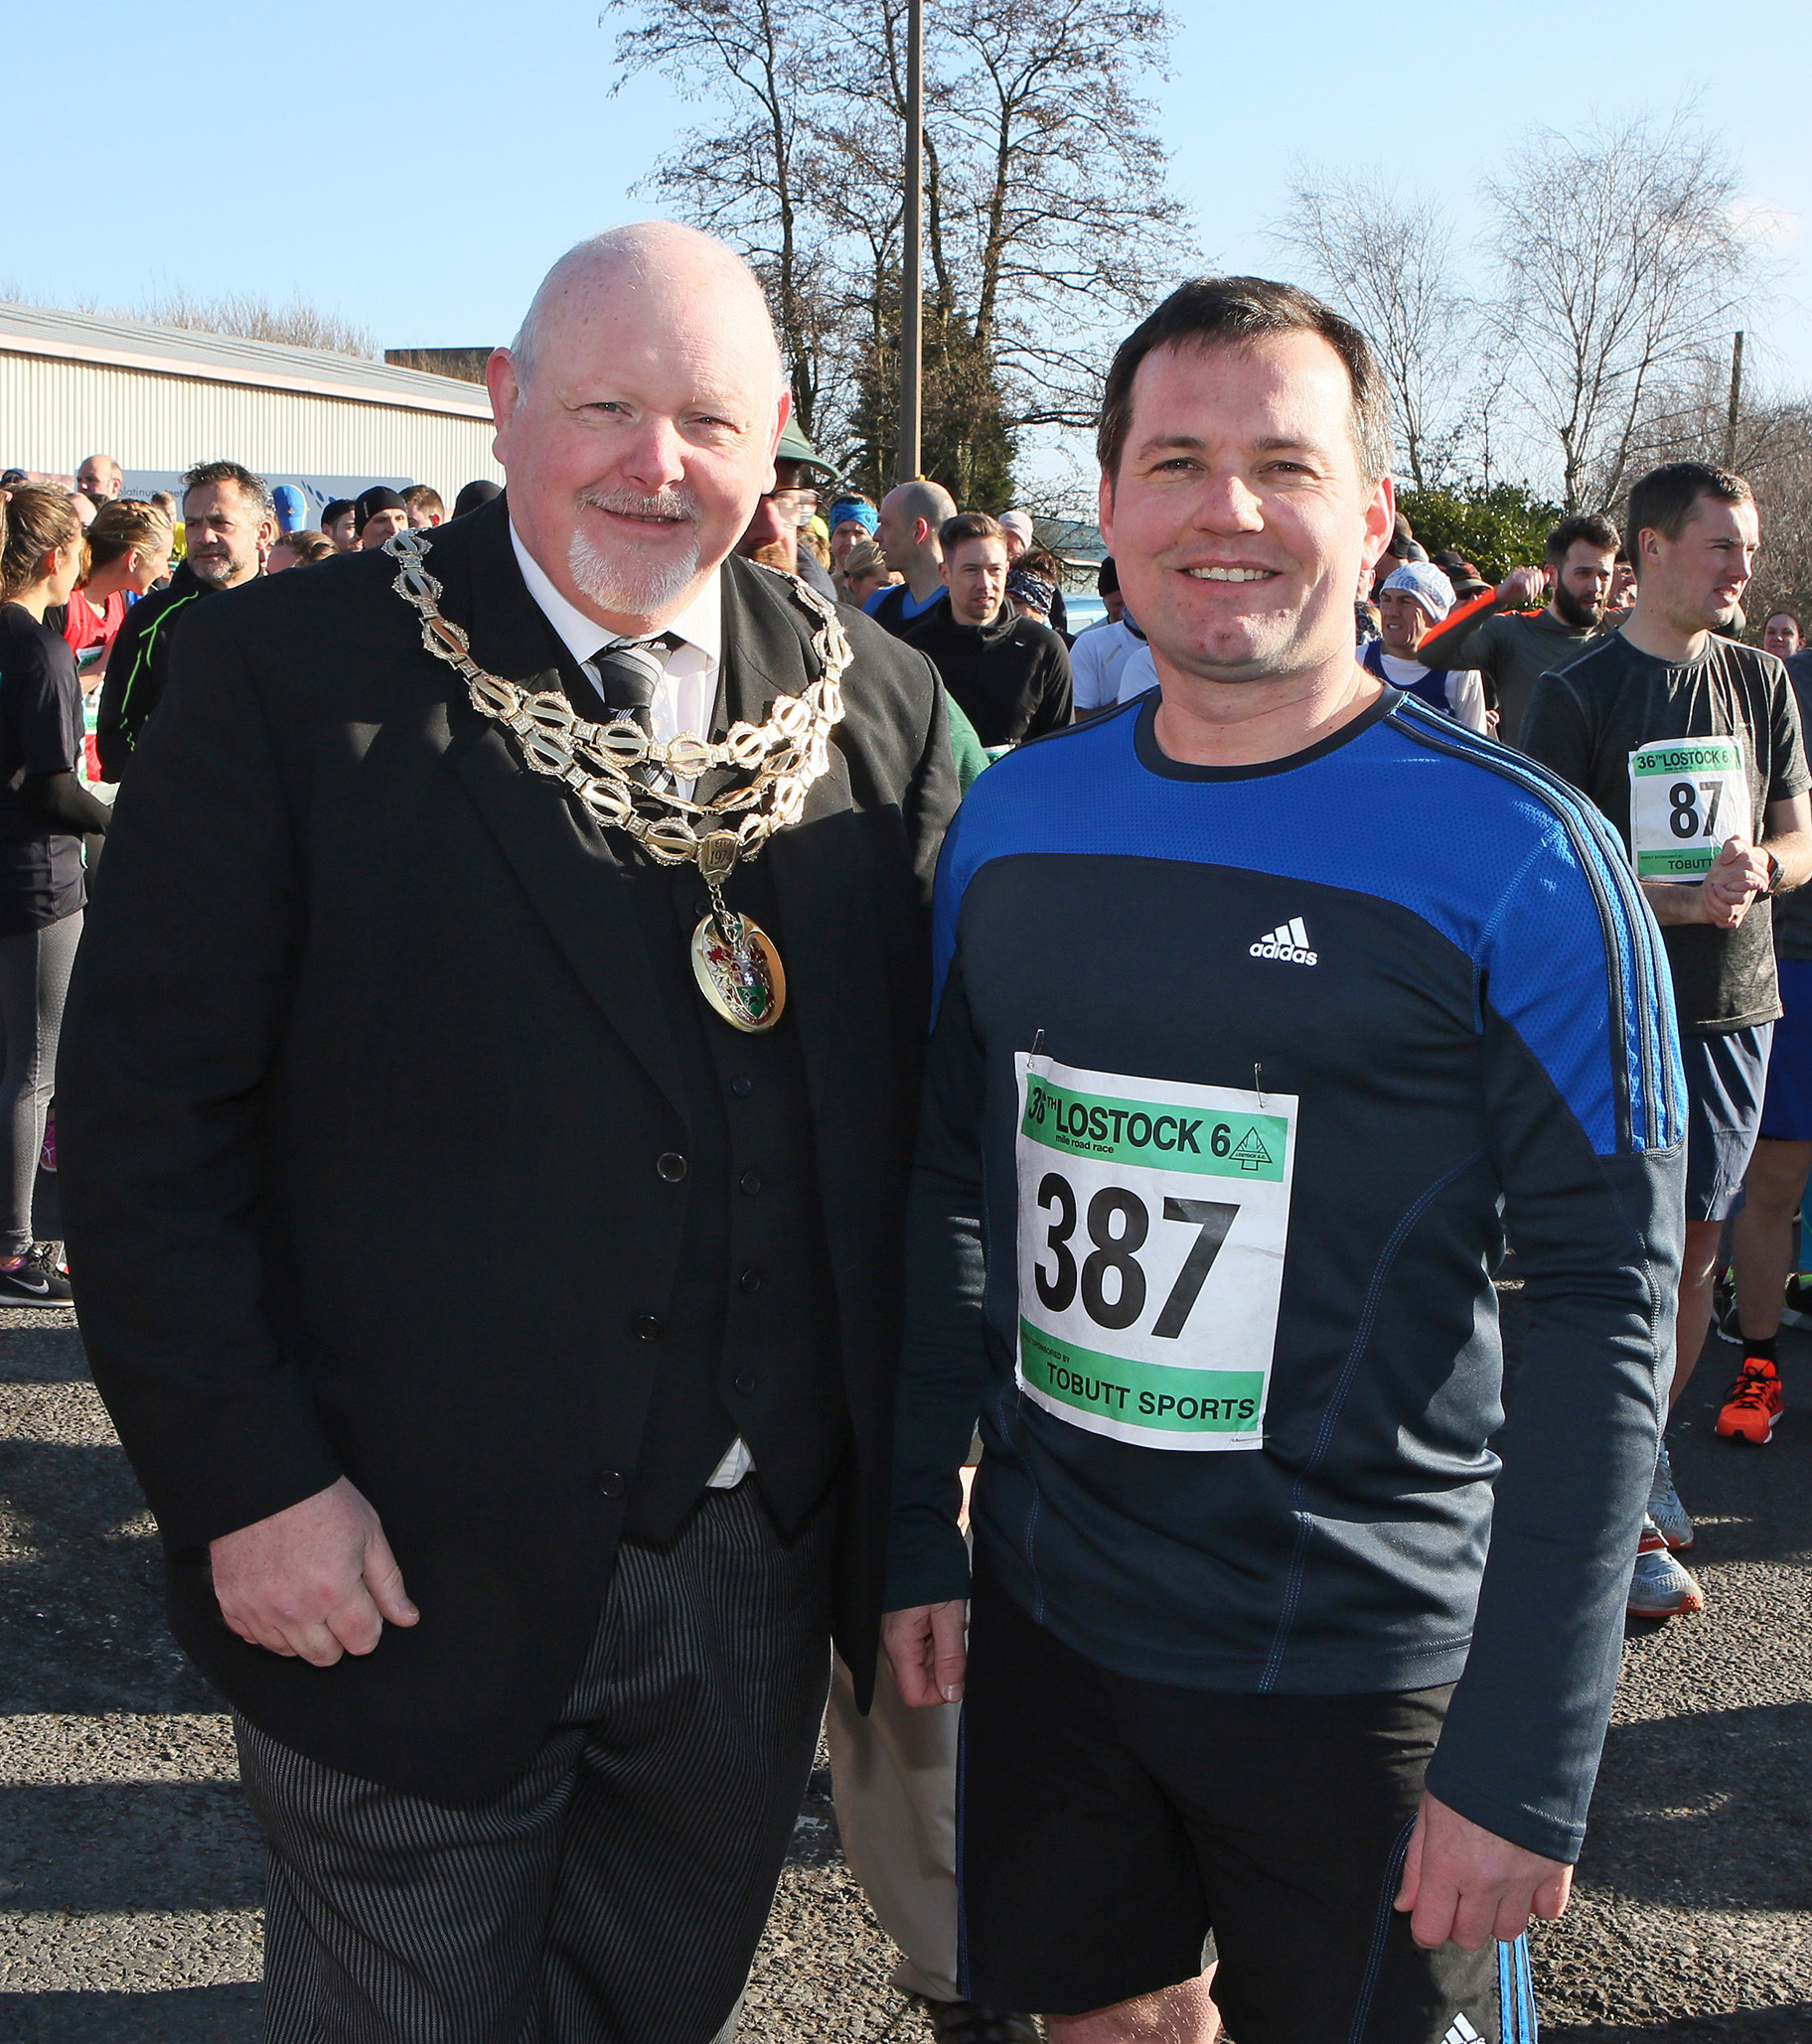 Thre Mayor of Horwich Stephen Rock starts the Lostock 6 Road Race with Chris Green MP who took part in the event...25th February 2018..Photo: Gary Taylor.Tel: 07762 756577...